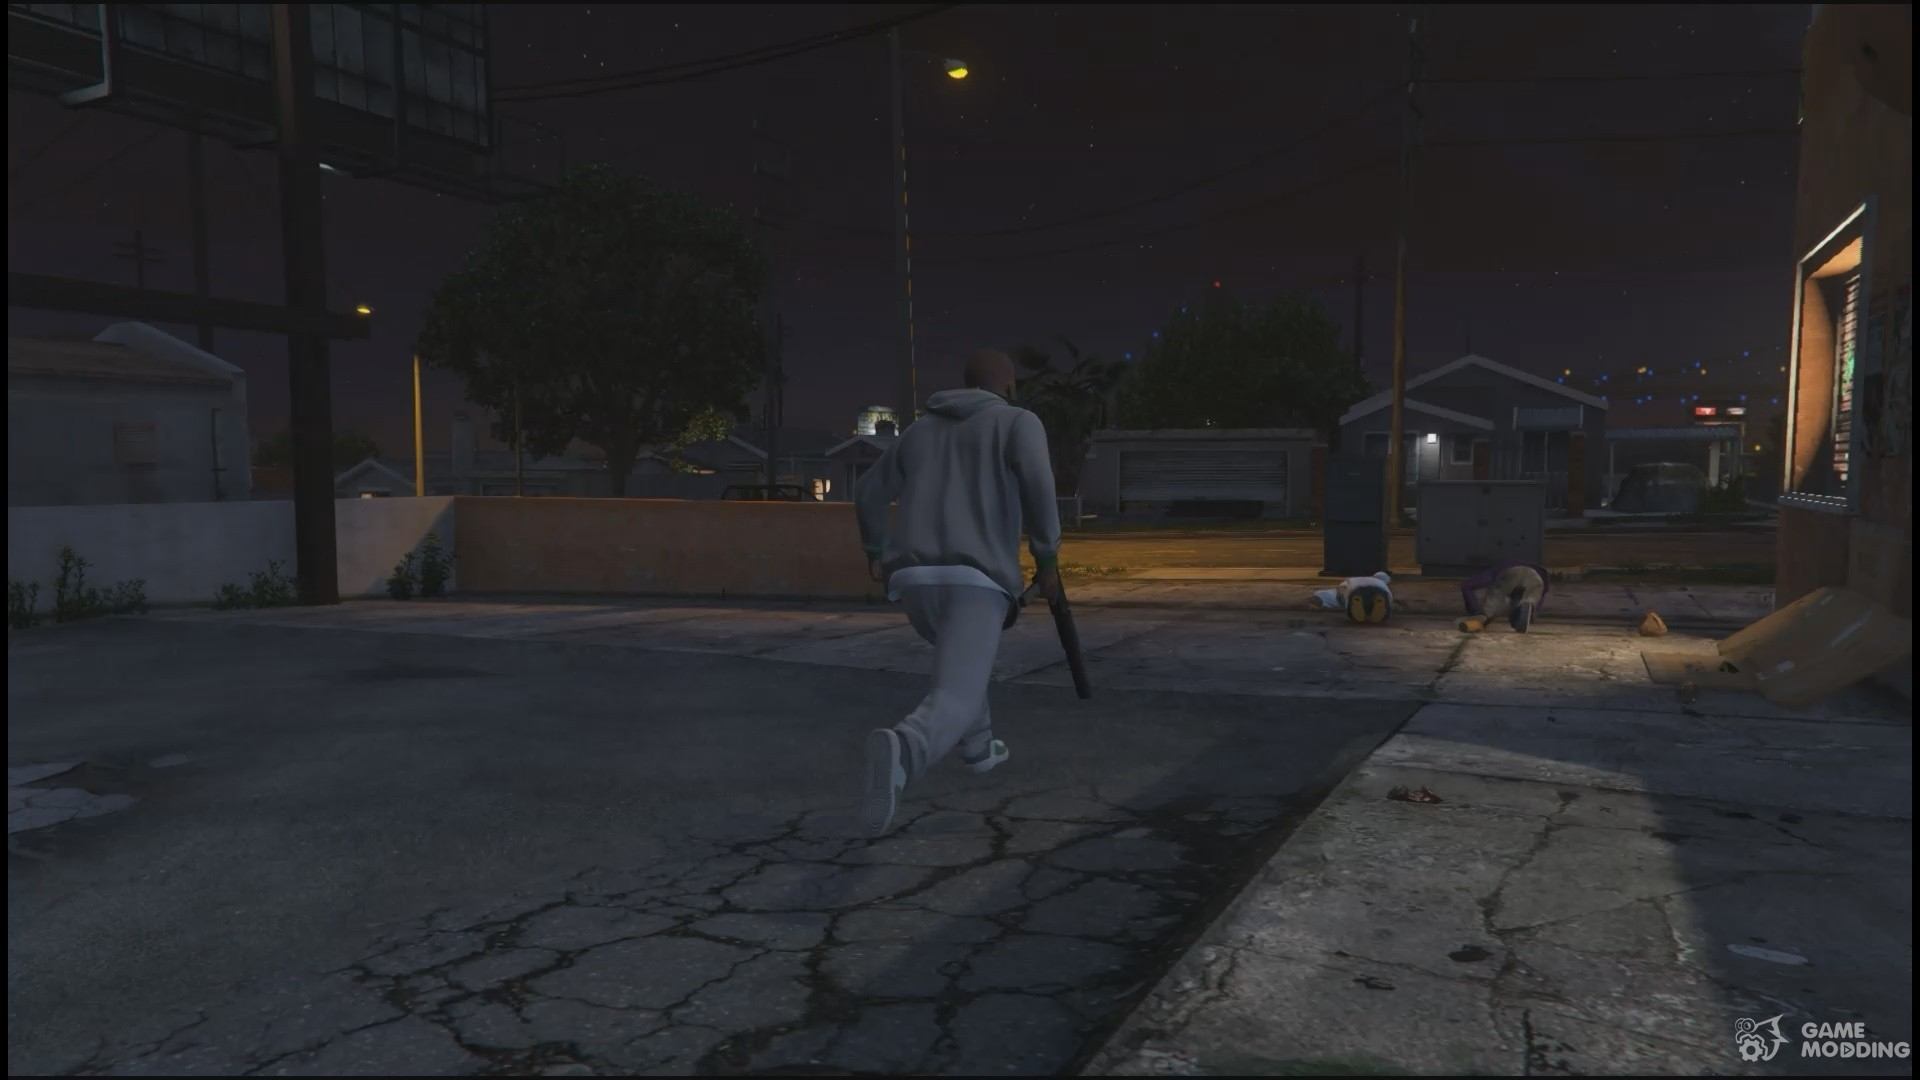 how to download gta 5 on mac